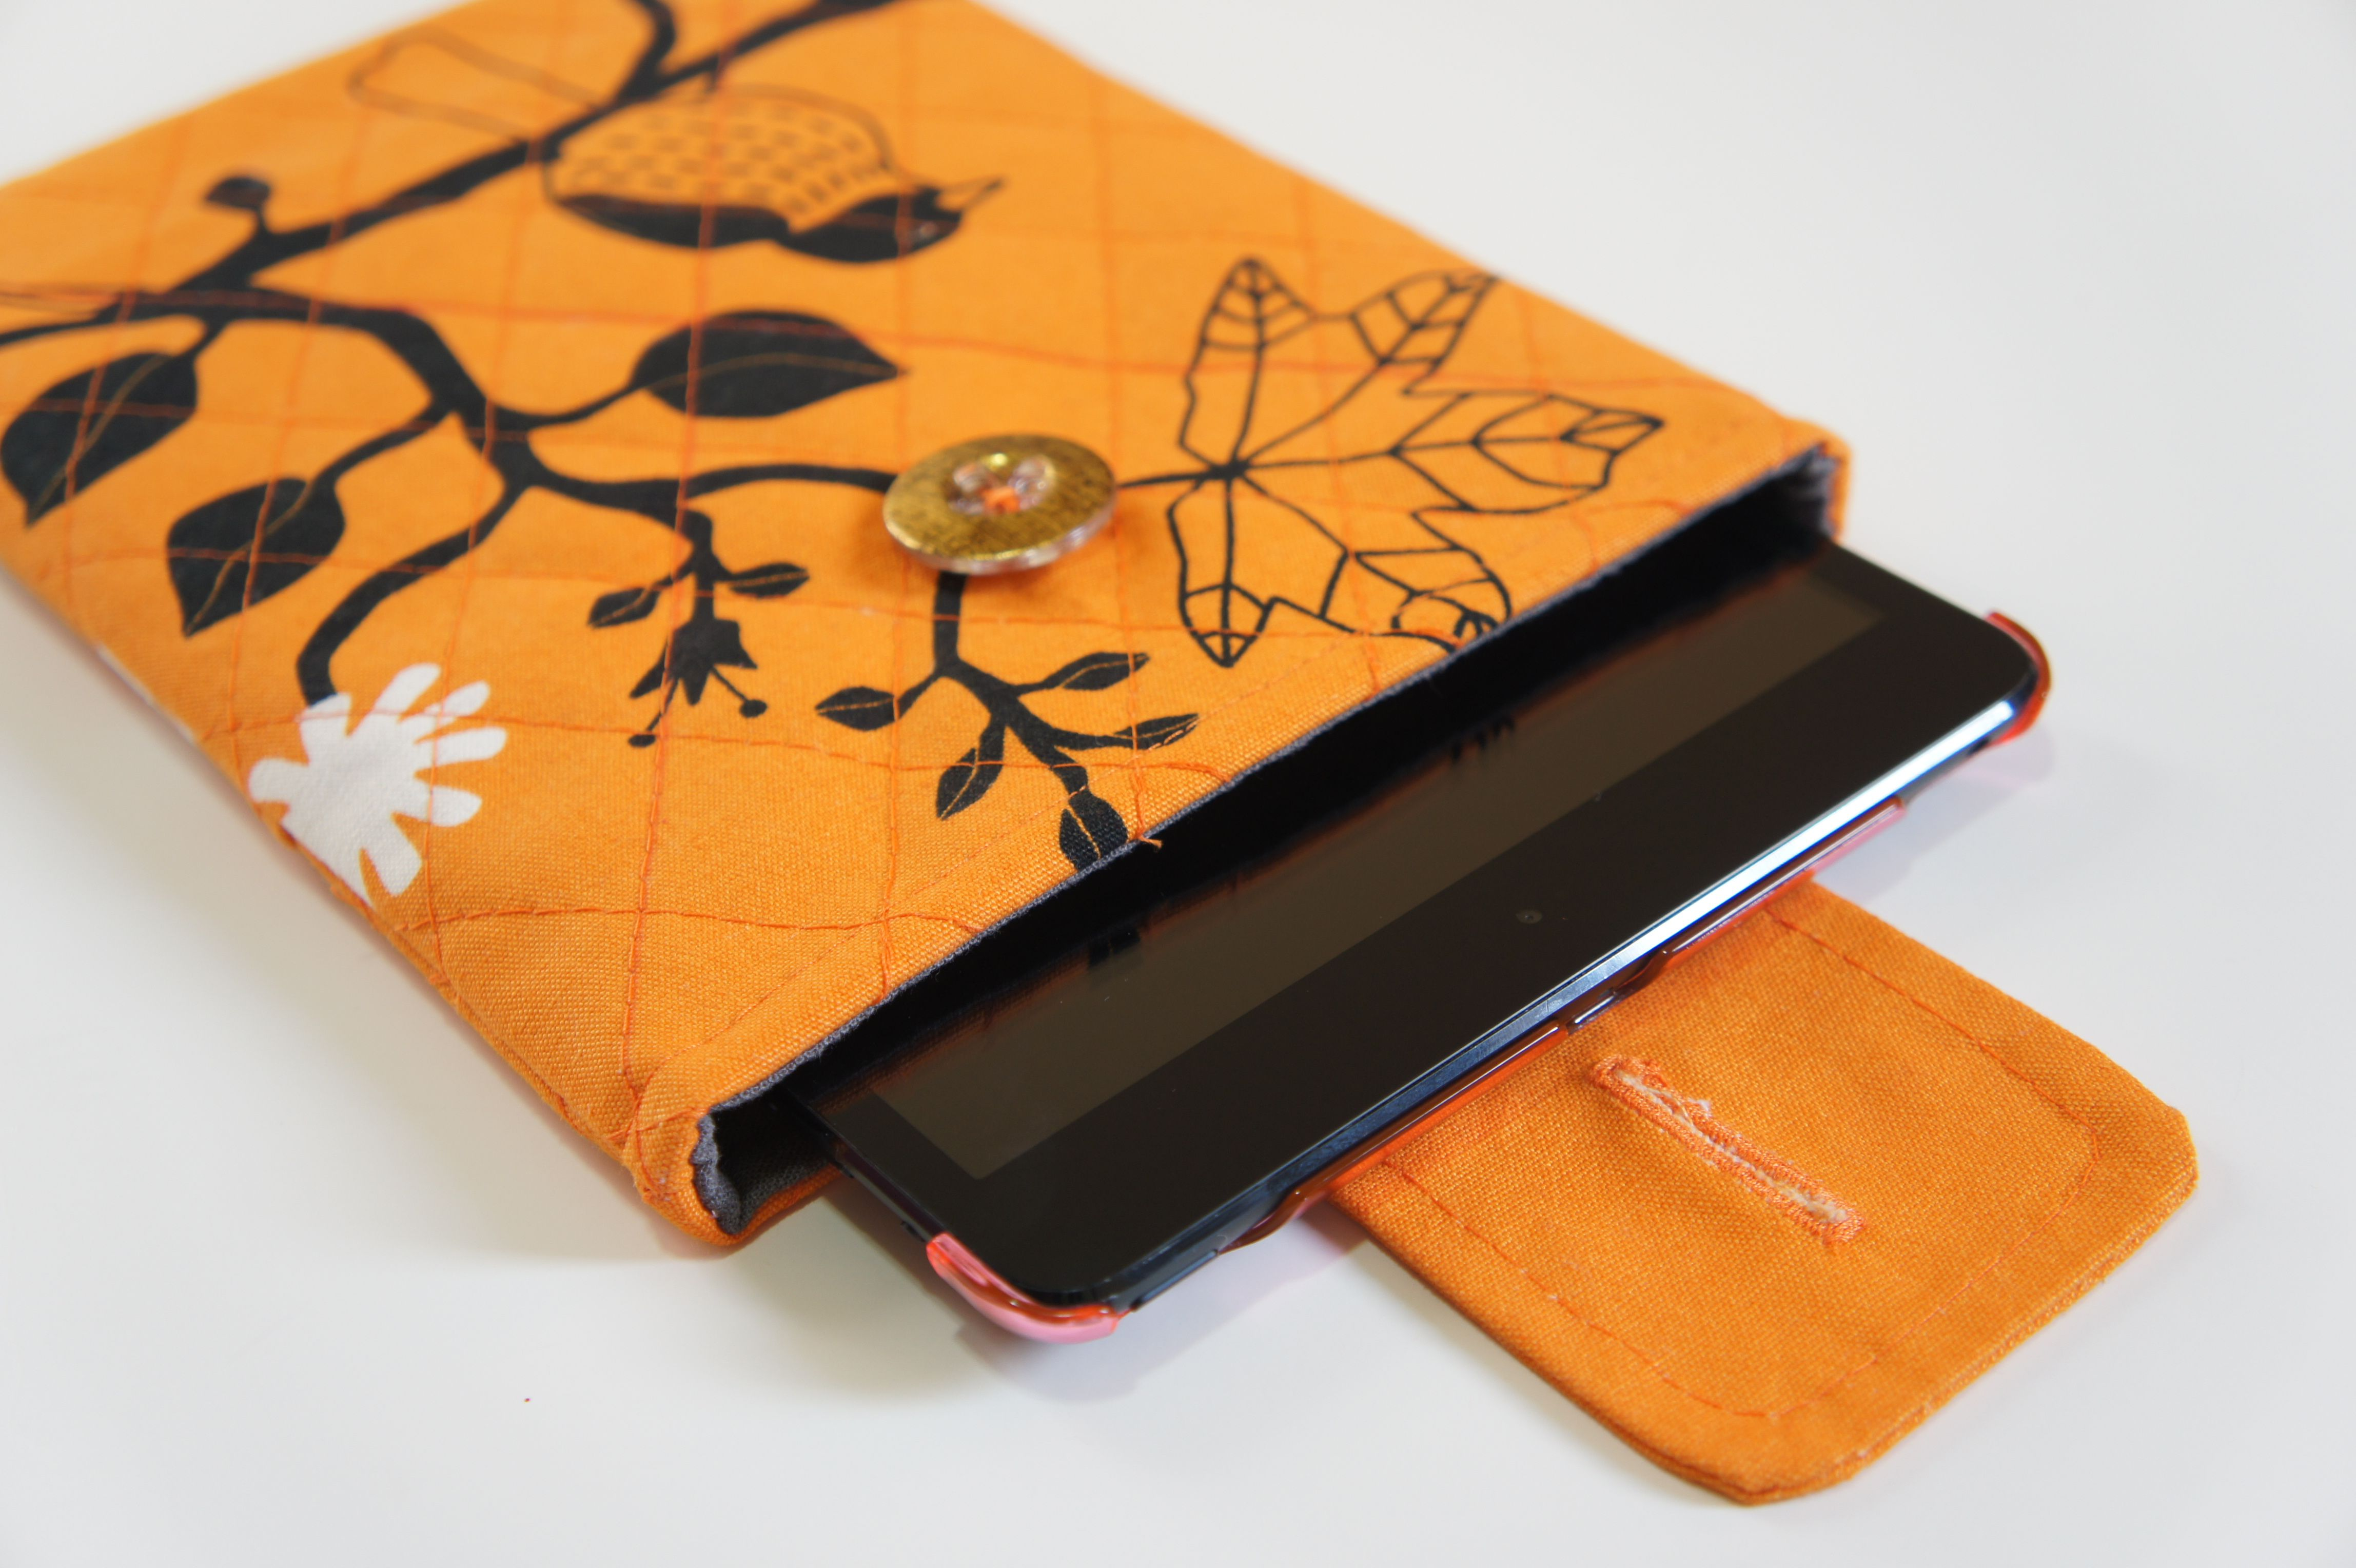 Ipad mini quilted sleeve sewing tutorial diy and crafts ipad mini quilted sleeve sewing tutorial baditri Image collections